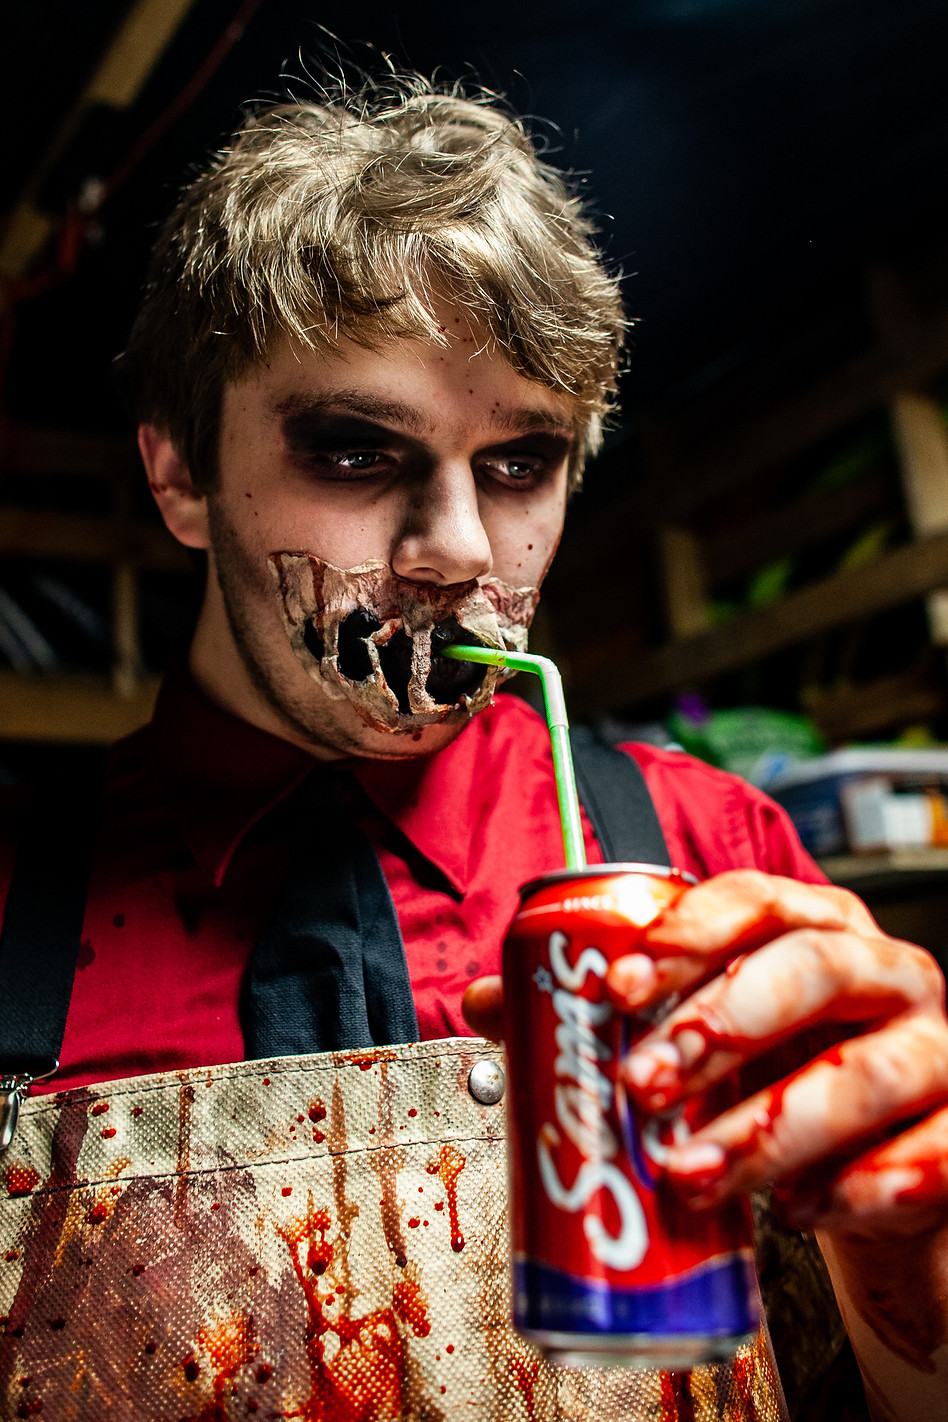 Scare-actor Logan Denison sips his soda through a straw fit between his prosthetic mouth makeup just before opening on Saturday night.  Denison is a first-time actor this year and plays a doctor in the war zone. He arrived an hour before opening to get sufficiently covered in blood and gore. The actors layer detail in their costumes, paying attention to things like prosthetics or shoes if they can, but prioritizing what the audience will pay the most attention to- the gore.